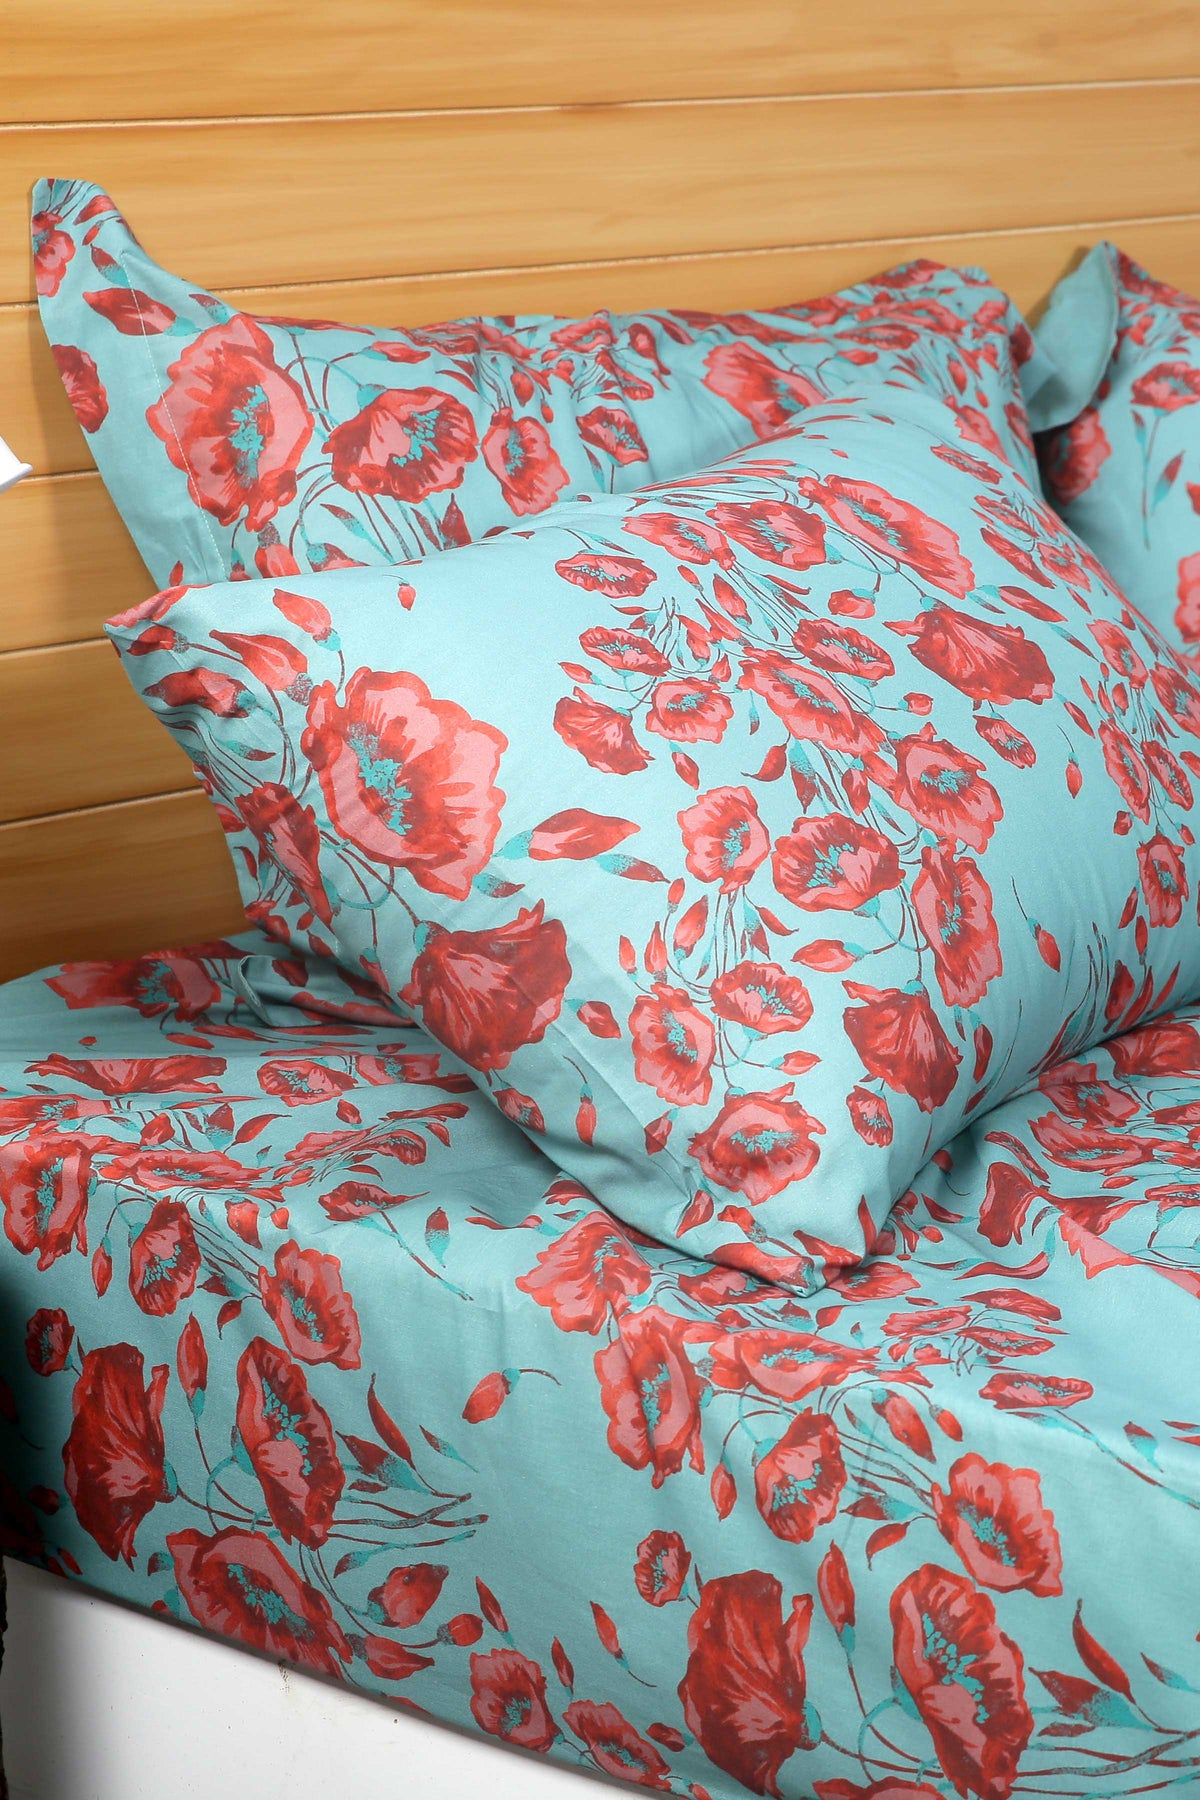 Flowers in the wild - Bed Sheet